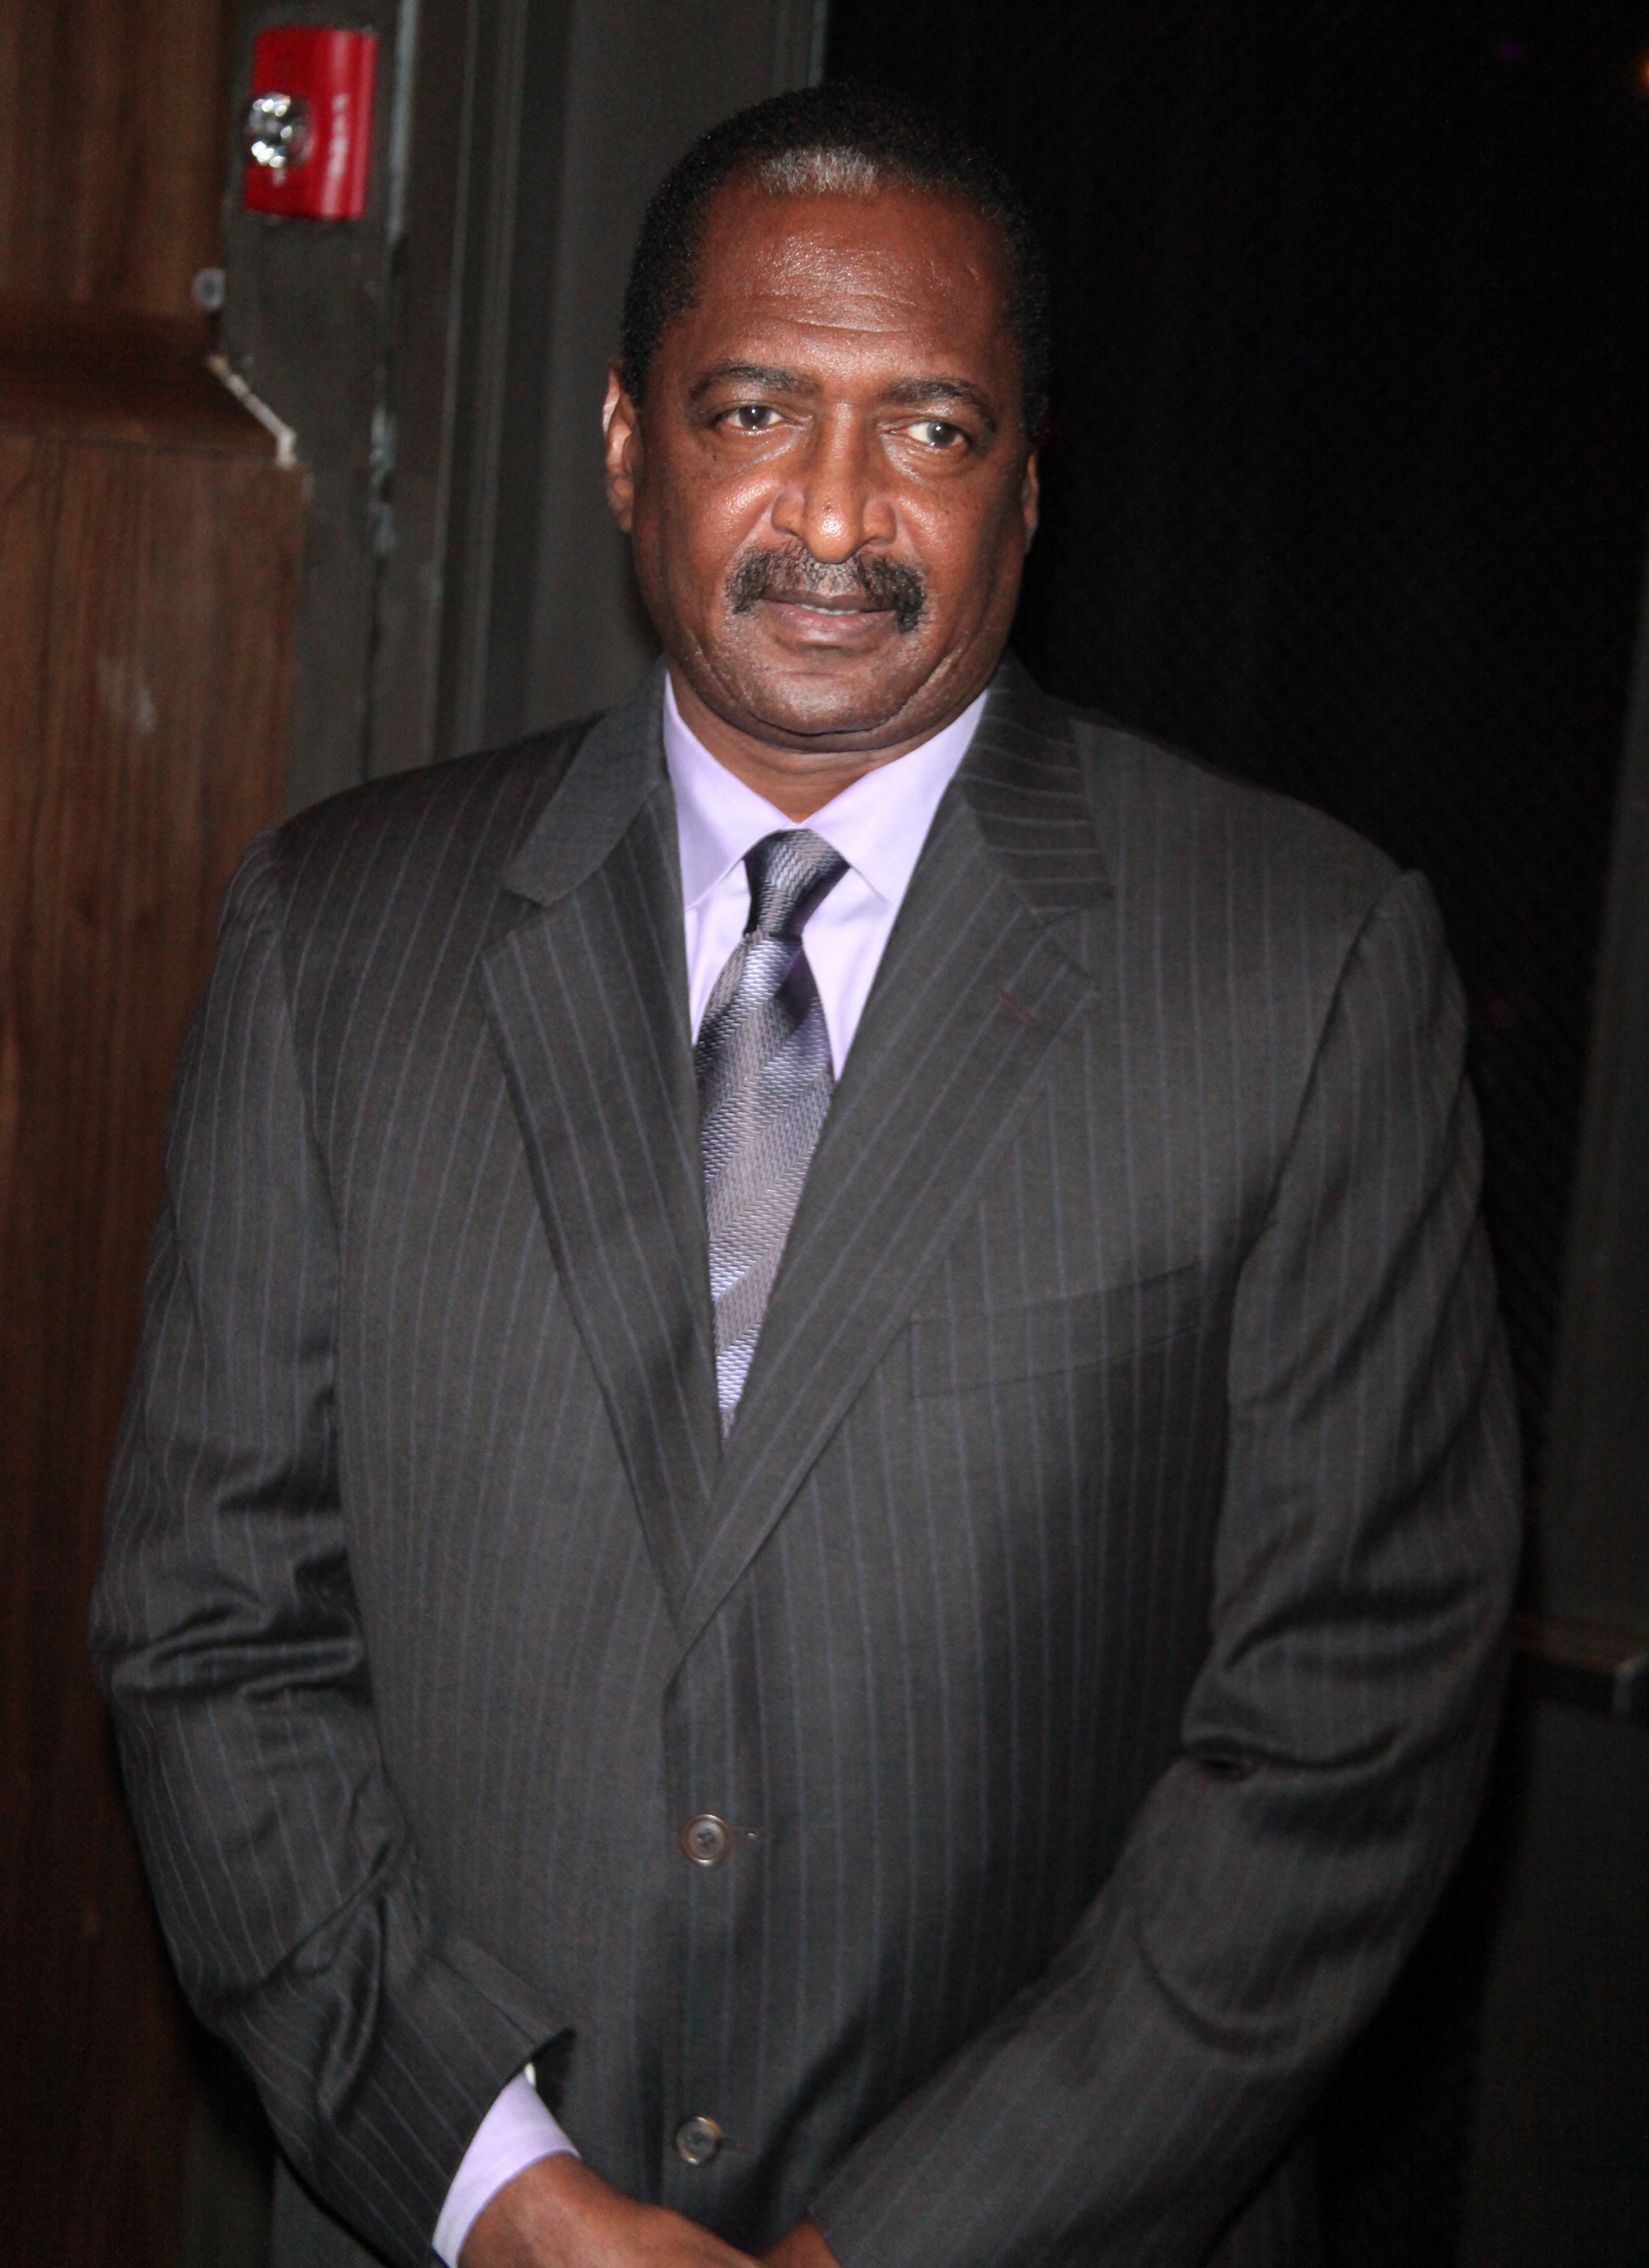 Mathew Knowles                  Living Legends Foundation announces its 2011 Honorees in celebration of its 20th Anniversary                                    Featuring: Mathew Knowles                  Where: New York City, NY, United States                  When: 24 Feb 2011                  Credit: WENN